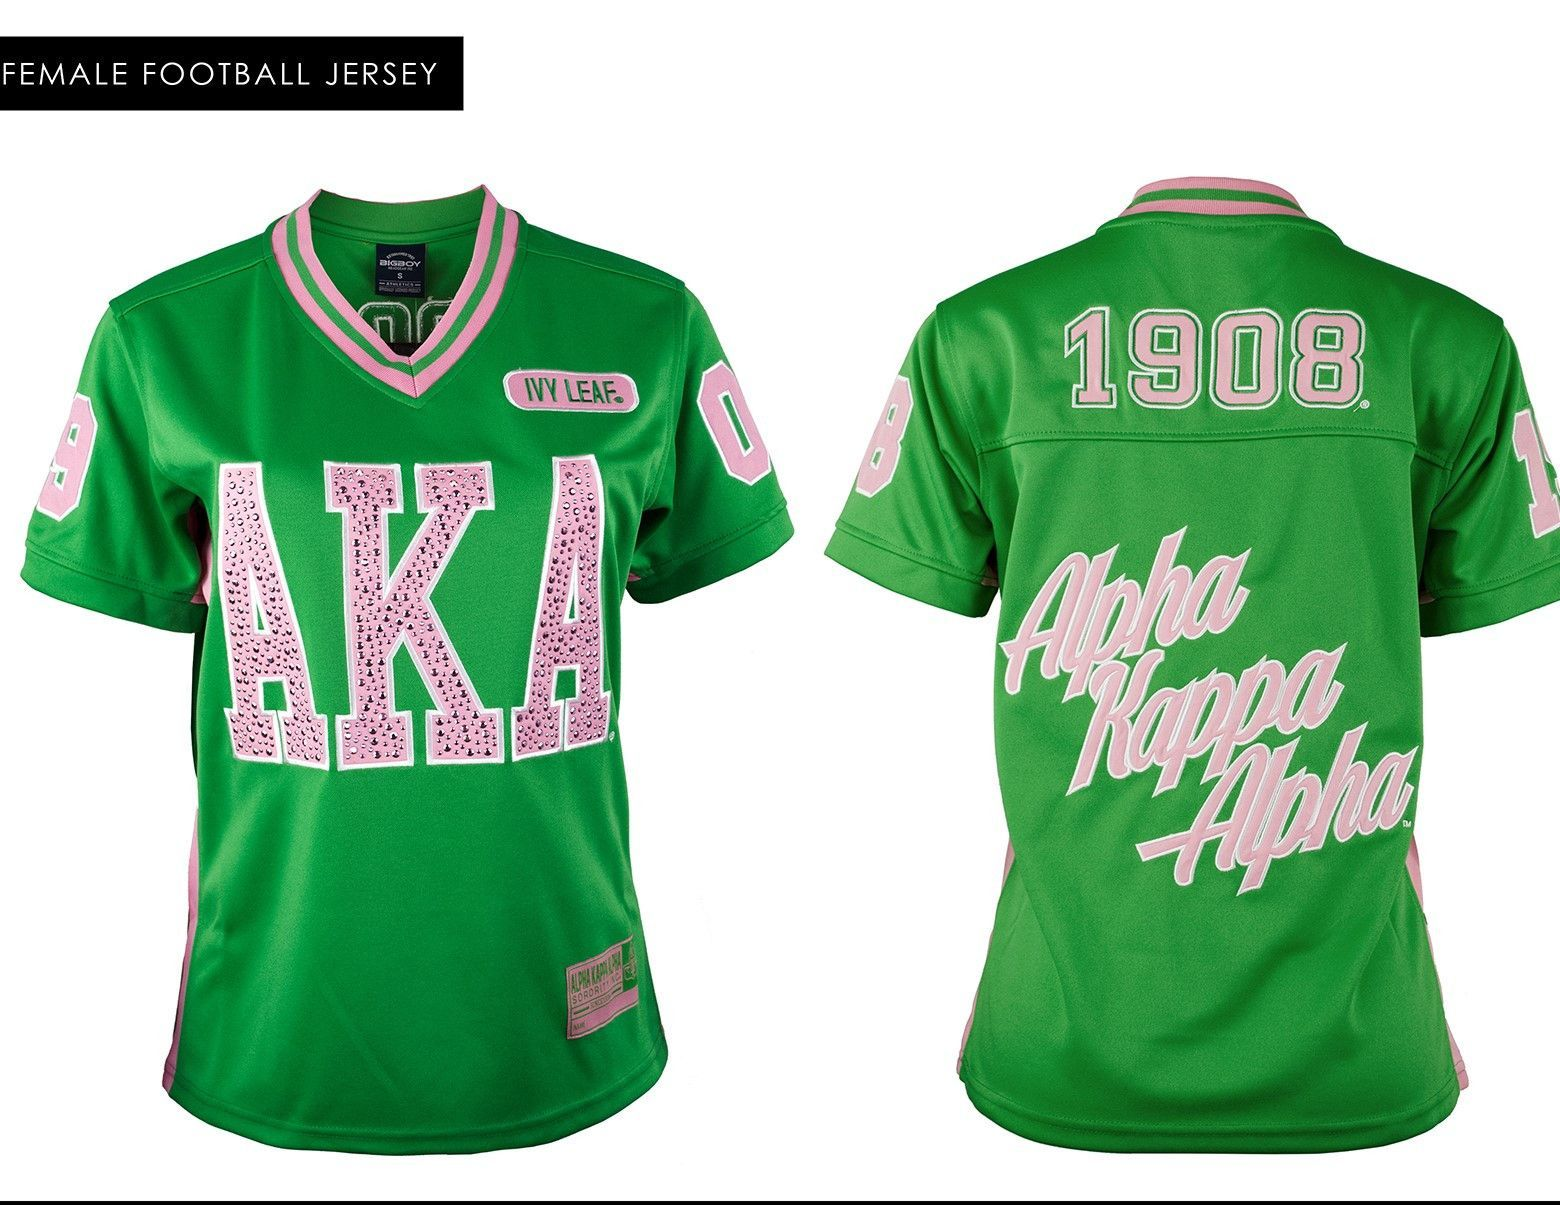 89408fbb6 Alpha Kappa Alpha Football Jersey in 2019 | Products | Alpha kappa ...